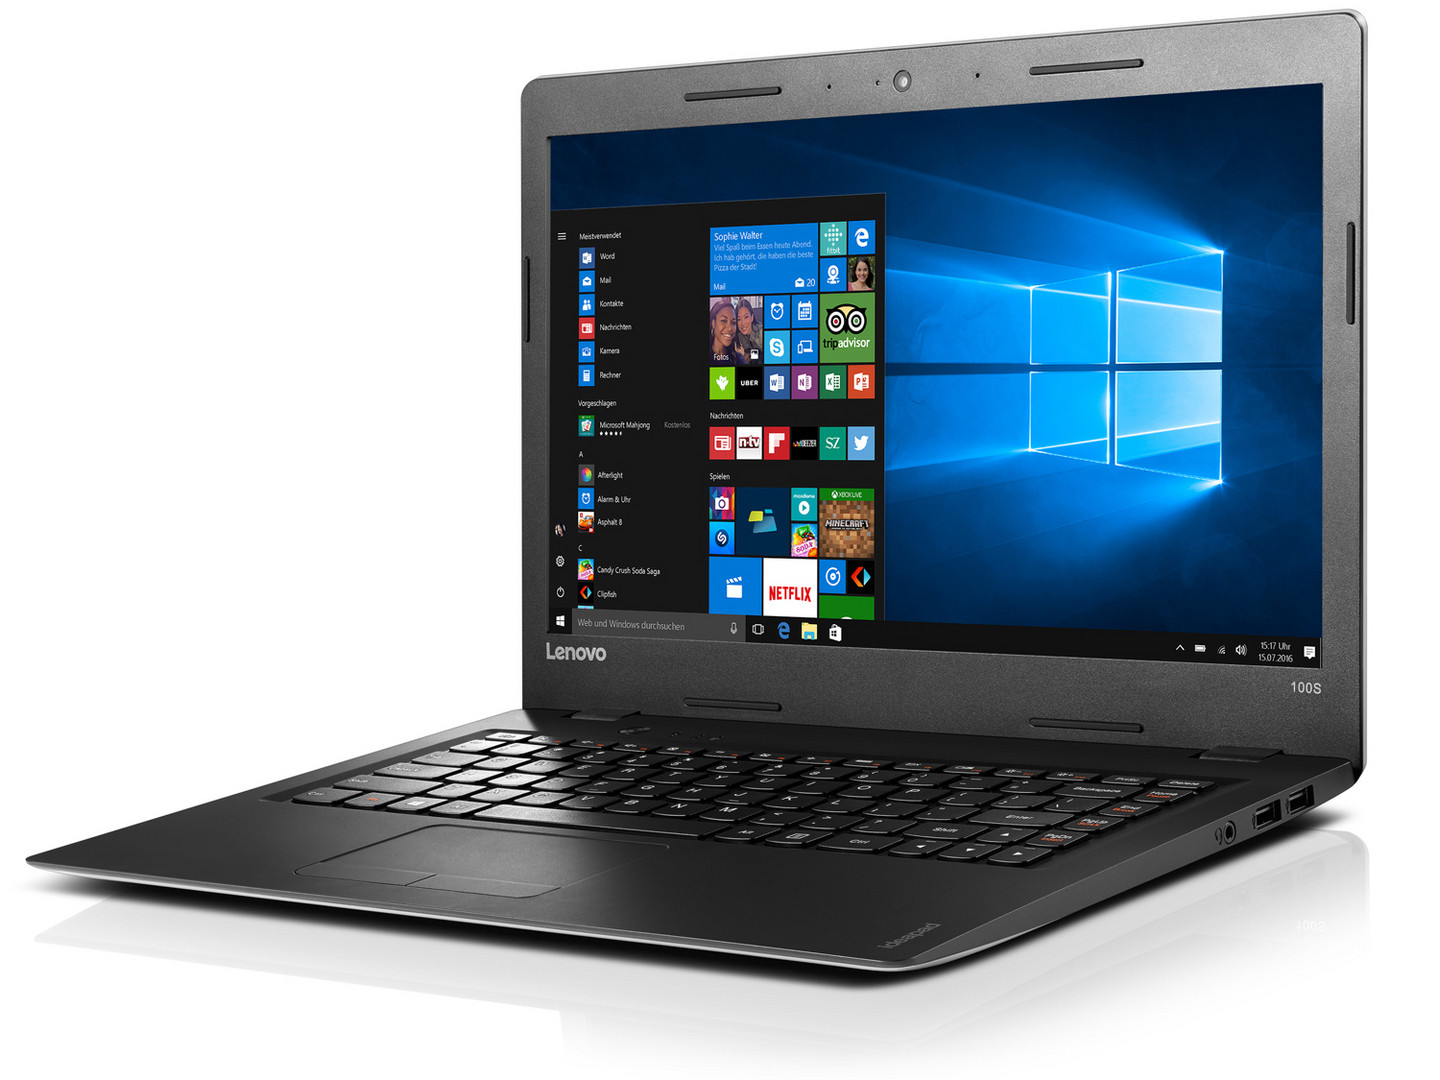 lenovo ideapad 100s-14ibr  n3060  hd 400  laptop review